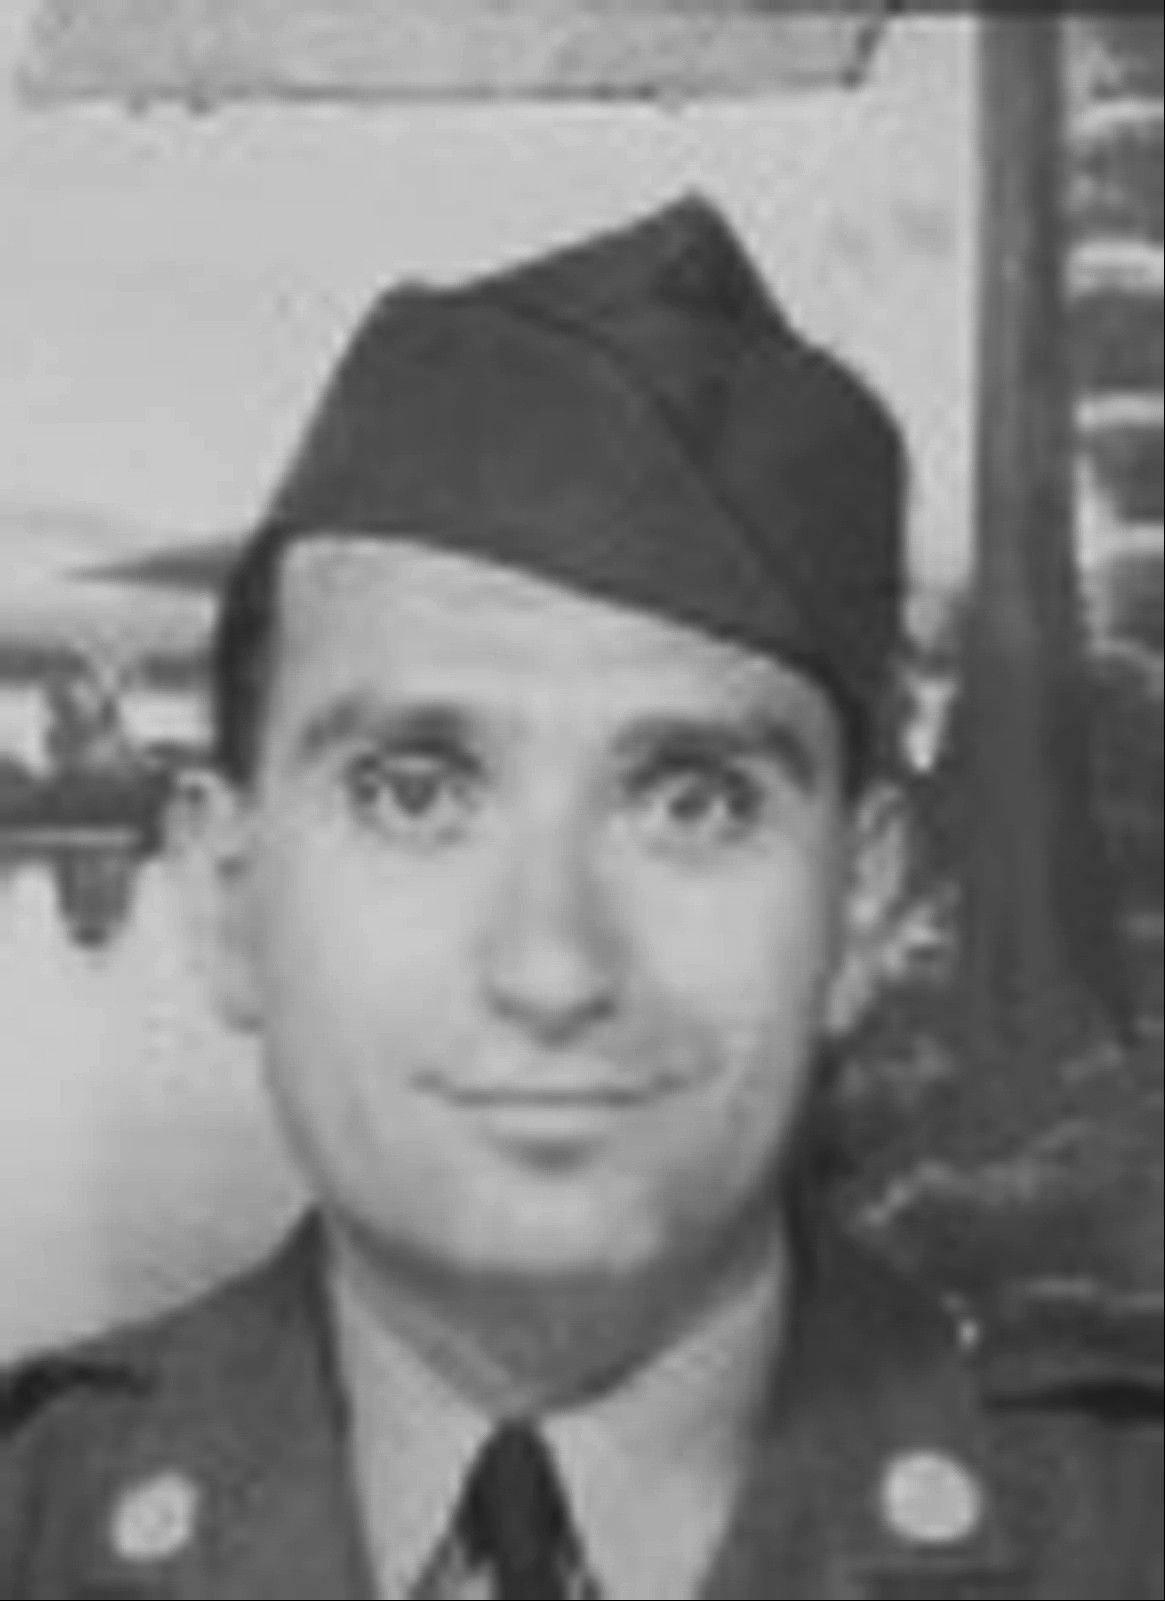 This undated image provided by Hyla Merin shows 2nd Lt. Hyman Markel. Markel was a rabbi's son, brilliant at mathematics, the brave winner of a Purple Heart who died in 1945. Markel was killed on May 3, 1945, in Italy's Po Valley while fighting German troops as an officer with the 88th Division of the 351st Infantry Regiment.